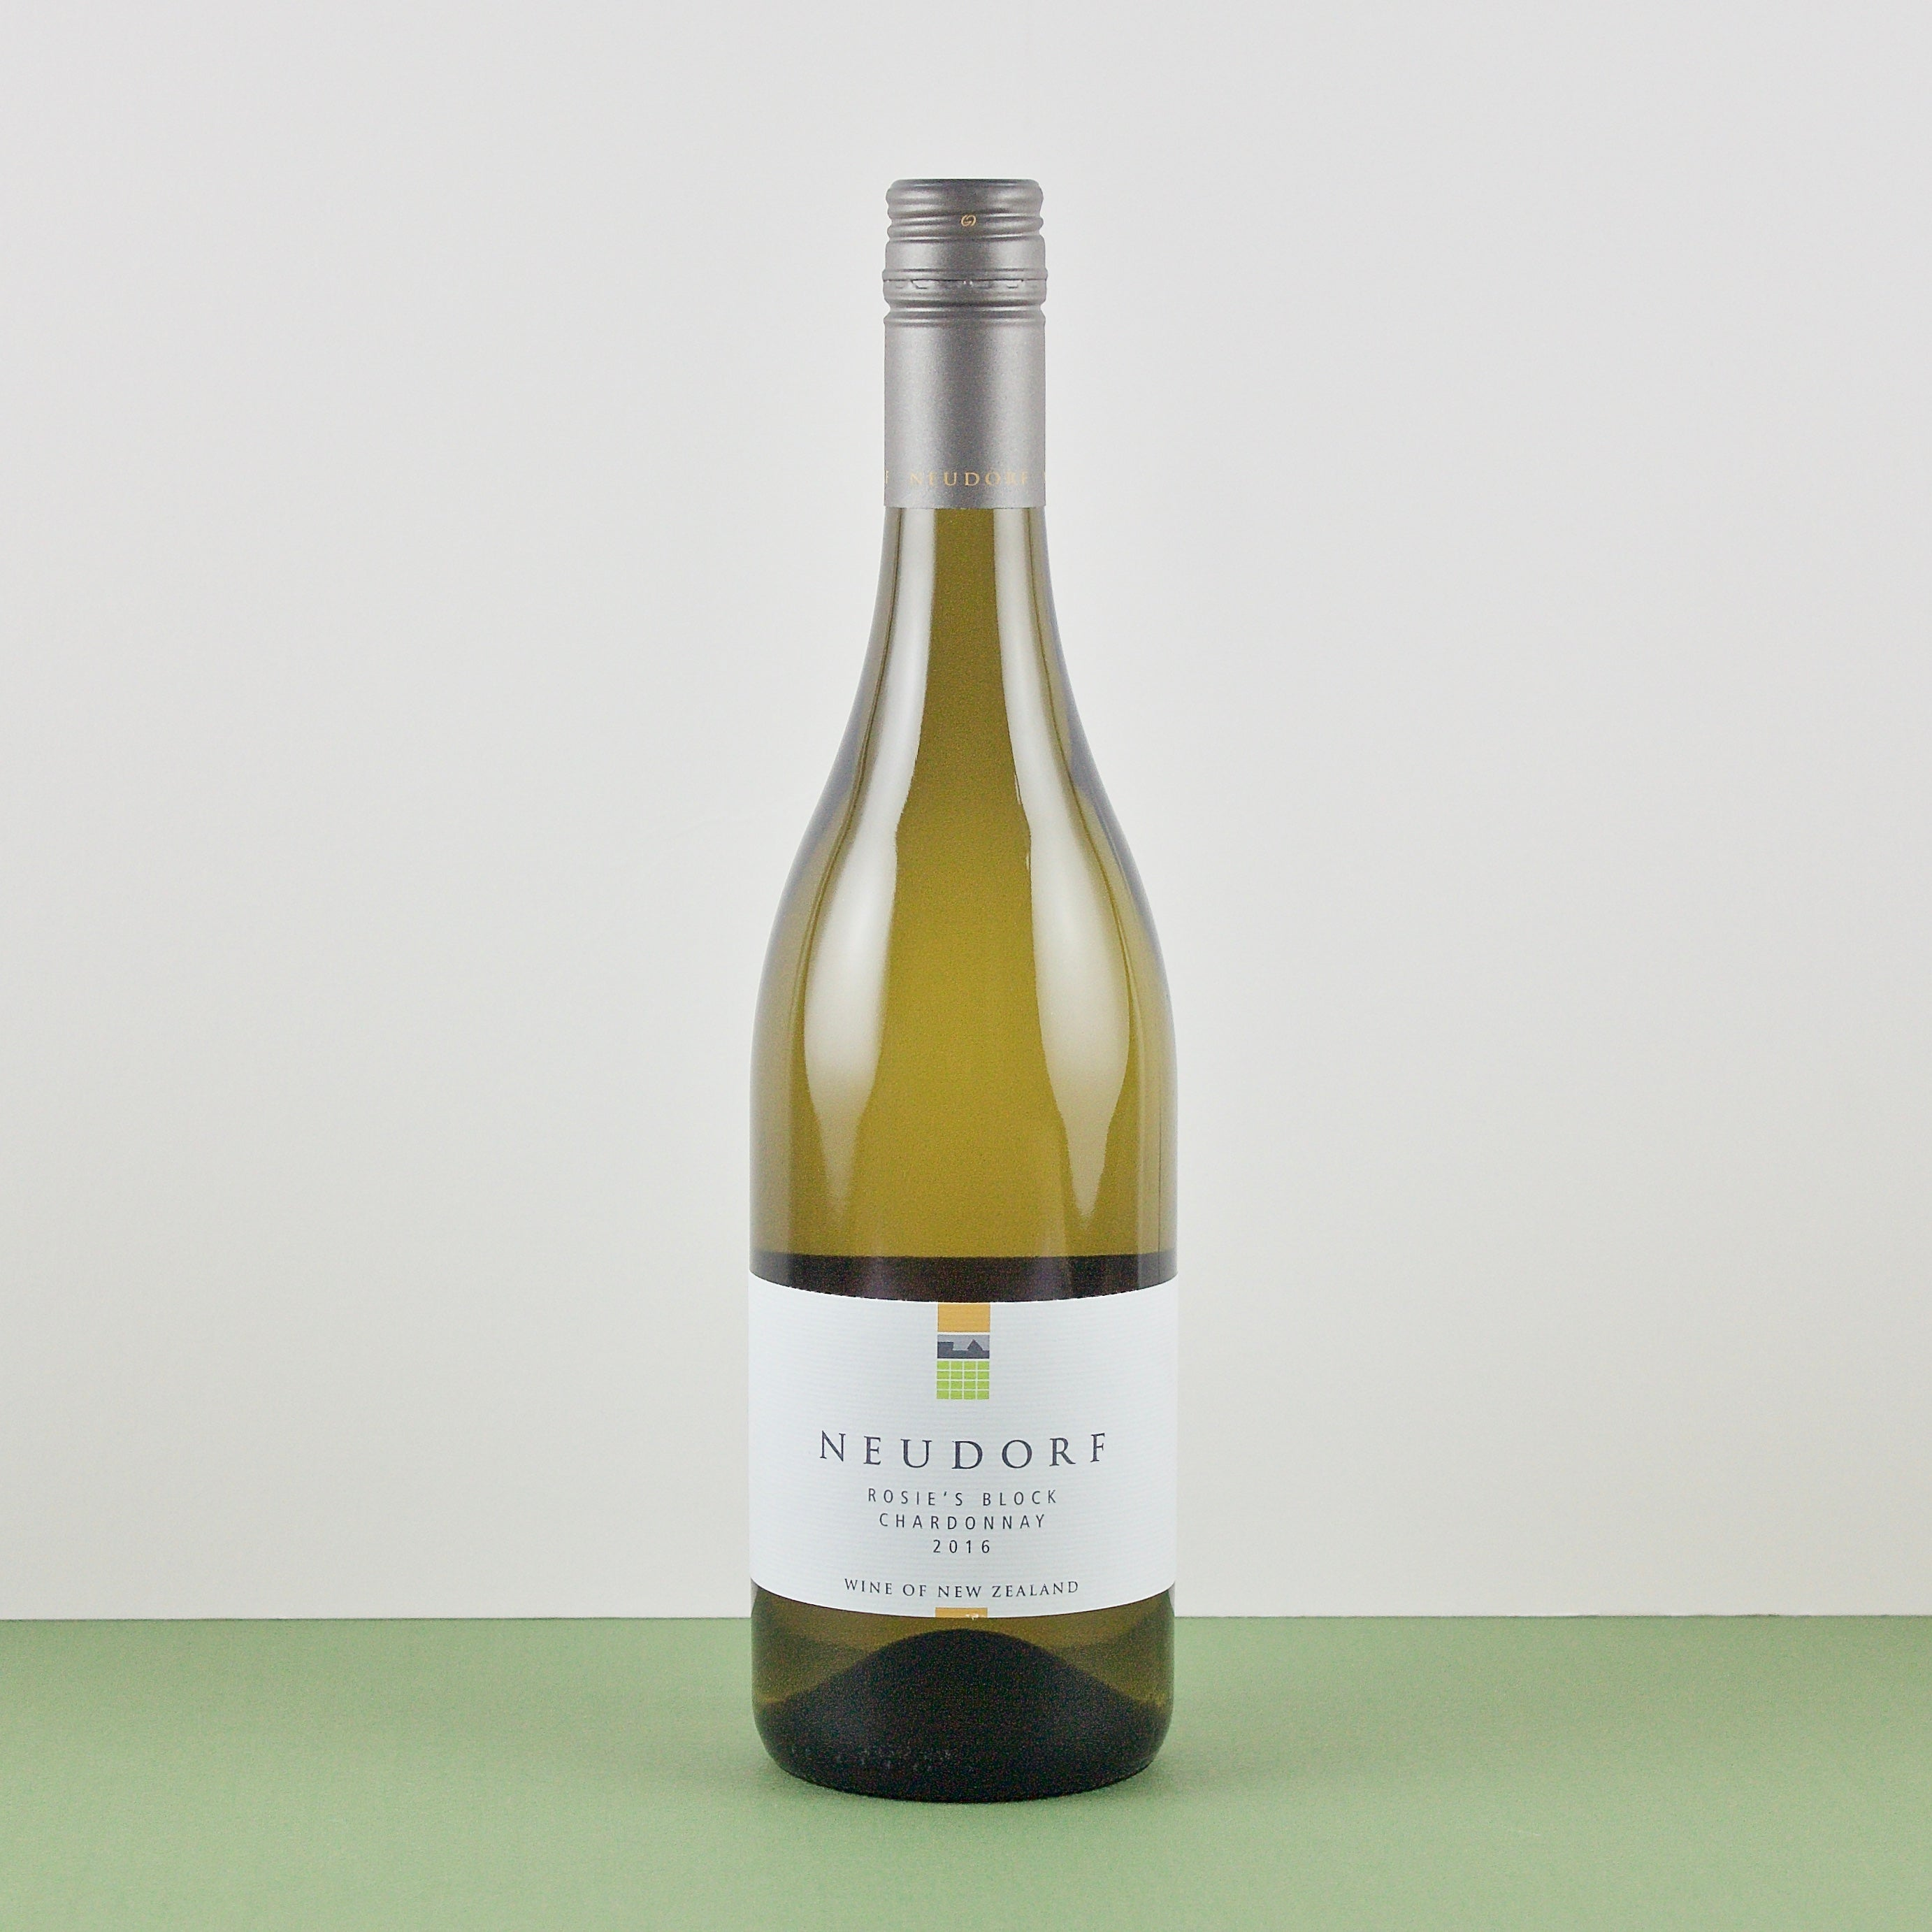 Rosie's Block Chardonnay, Neudorf, New Zealand